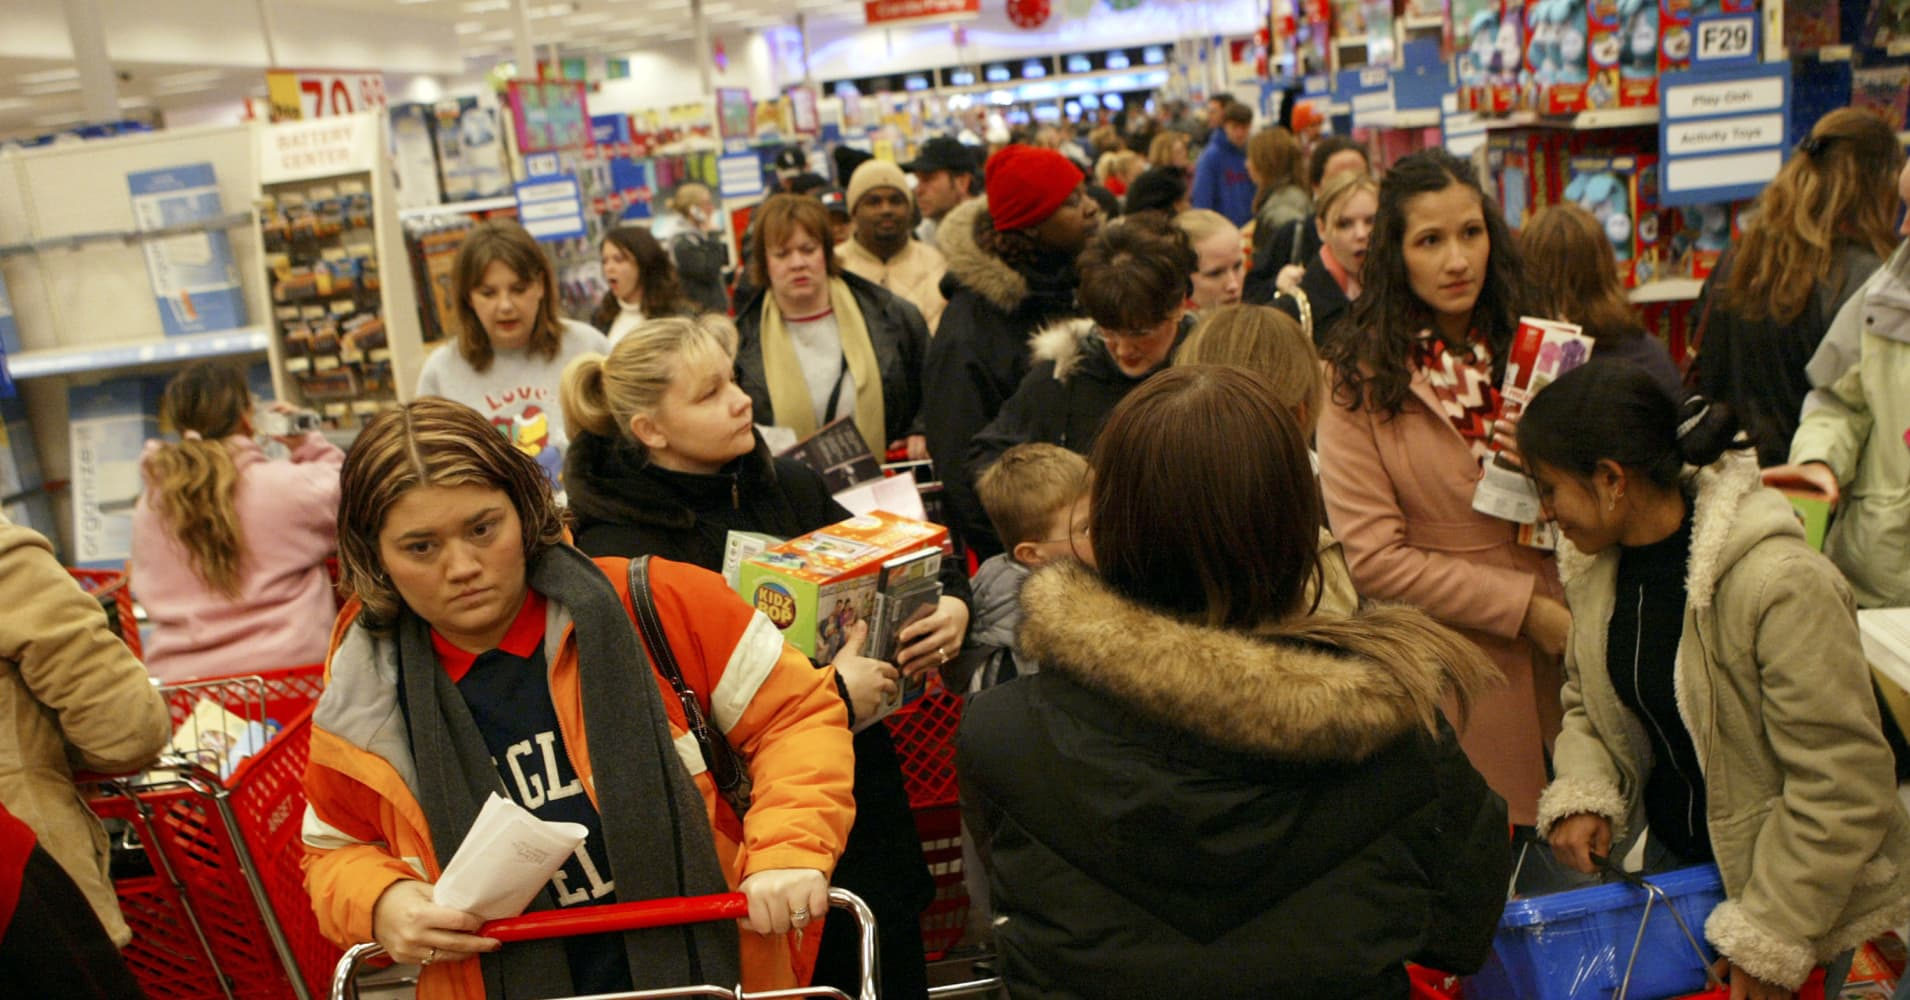 Want the best Black Friday deals? Head to a department store